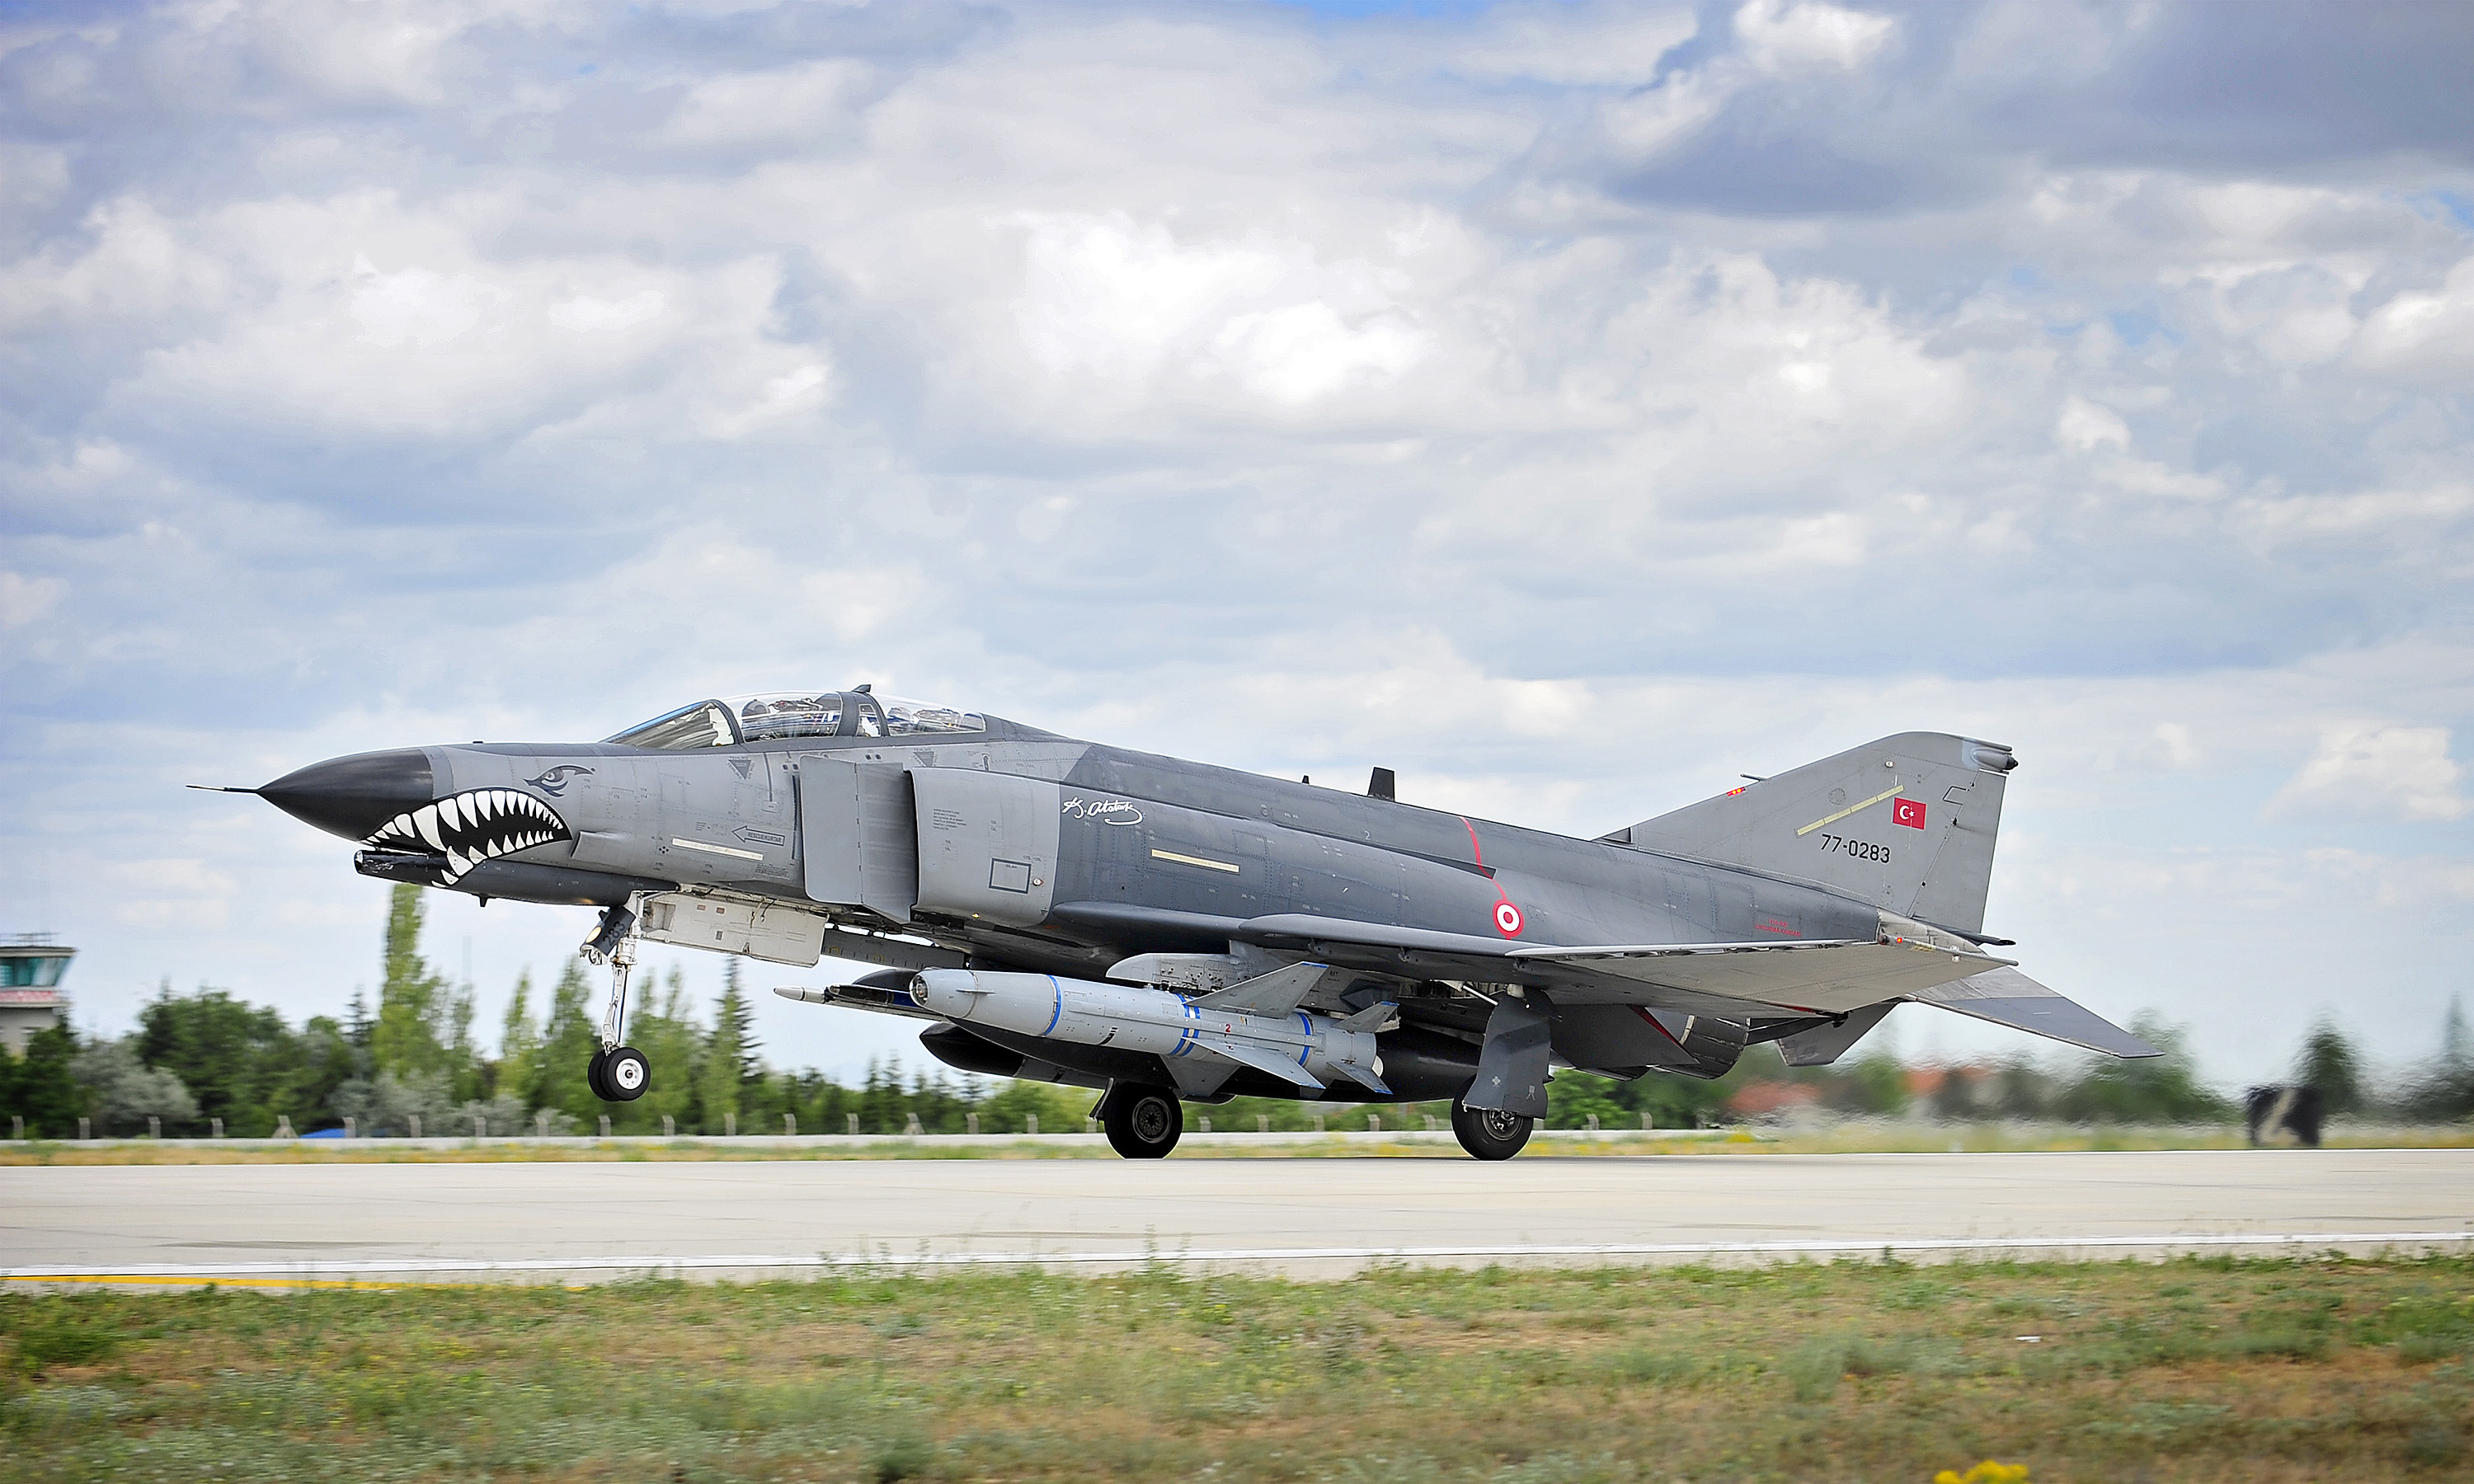 Turkish Armed Forces Photos and Videos - Page 2 Turkish_Air_Force_F4E_Phantom_II_MOD_45157794